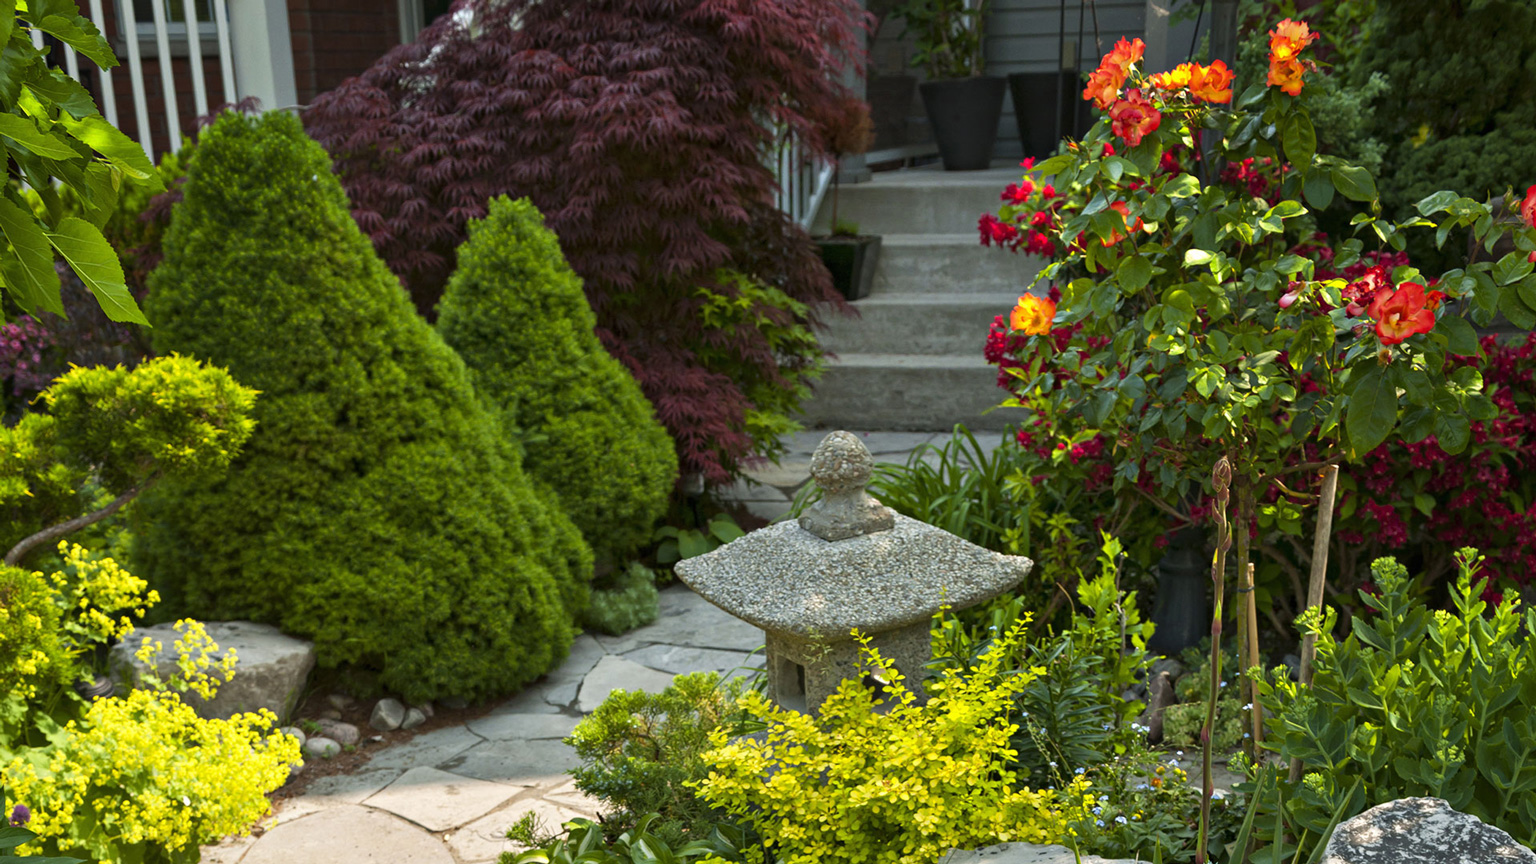 The Hamptons Landscaping: Organic Lawn Care, Landscape Design and Eco-Friendly  Landscaping specialists in Setauket, The Hamptons and Huntington - The Hamptons Landscaping: Organic Lawn Care, Landscape Design And